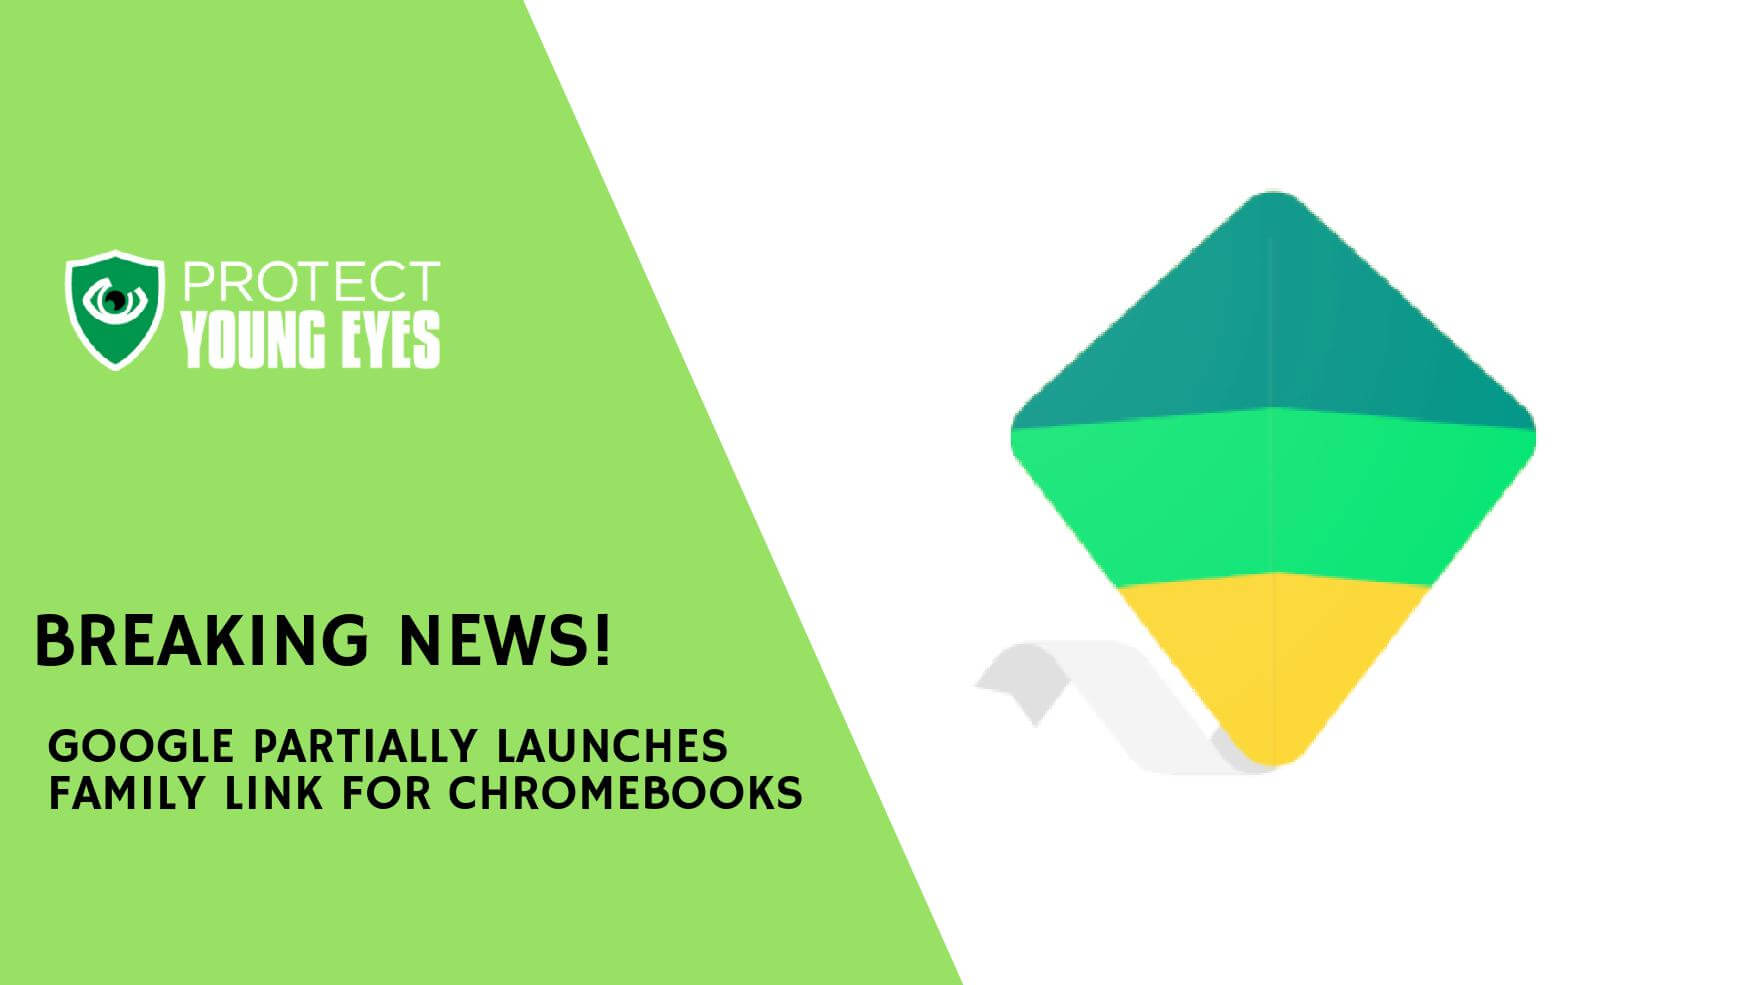 Update Google Adds Family Link To Chromebooks Protect Young Eyes Playstation 4 Block Diagram Breaking News